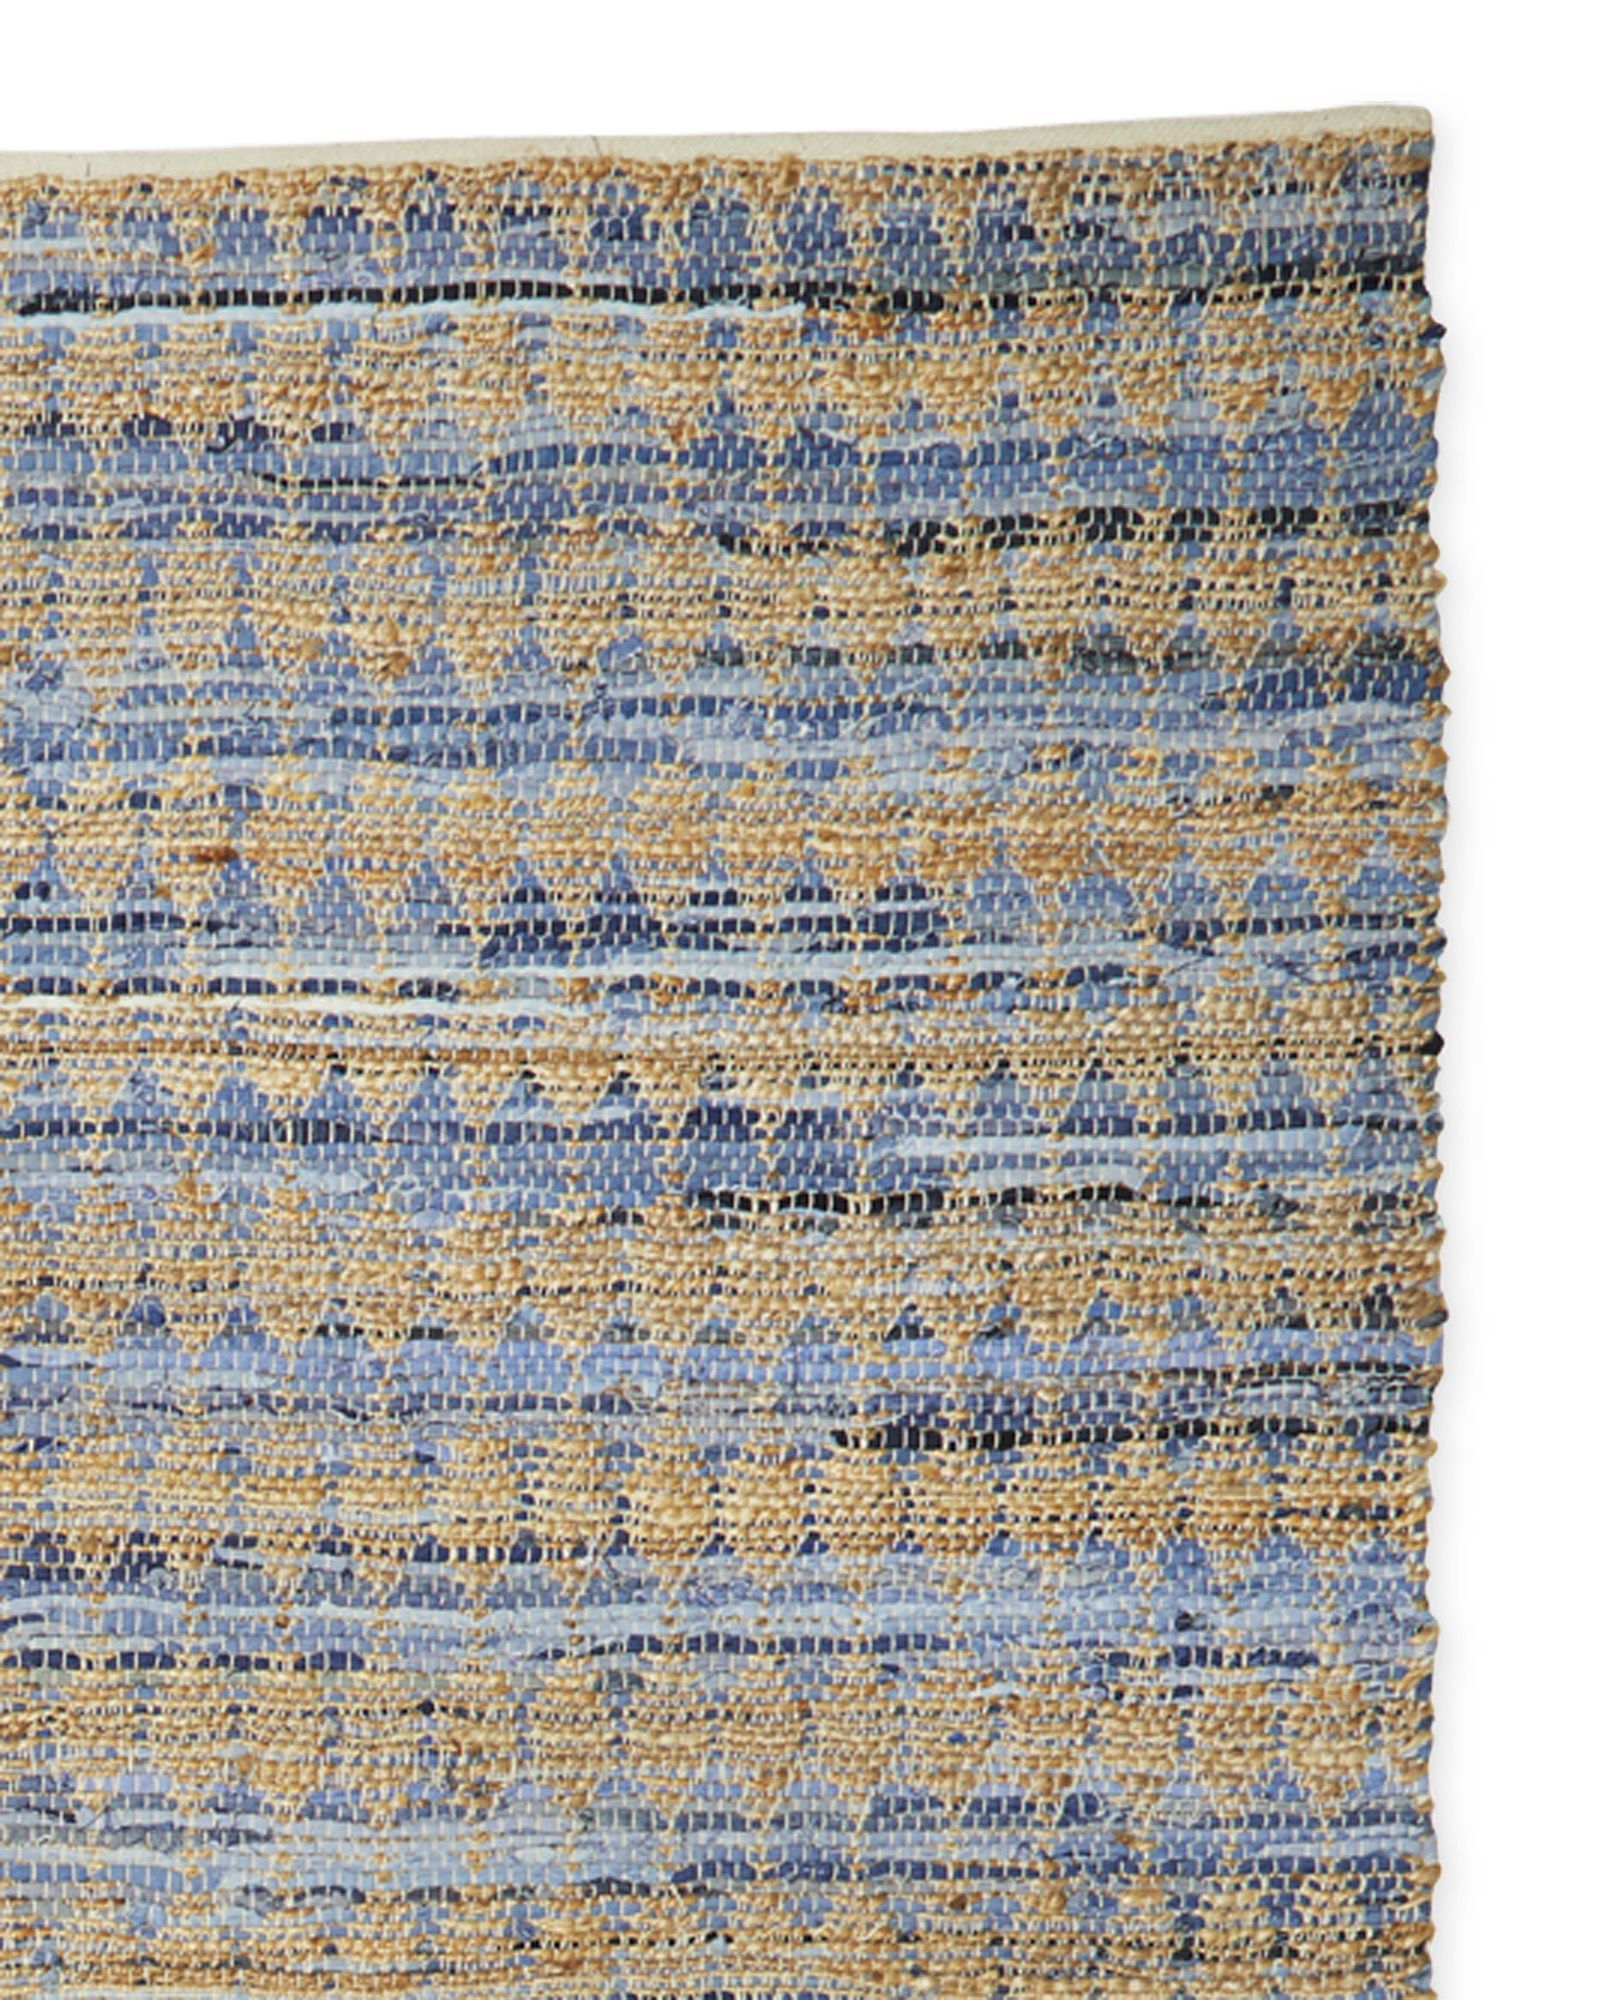 Add a coastal air with shades of blue and natural. Here, a perfectly imperfect pattern of diamonds gives denim and hemp an iconic look, without detracting from the relaxed vibe. Woven entirely by hand.